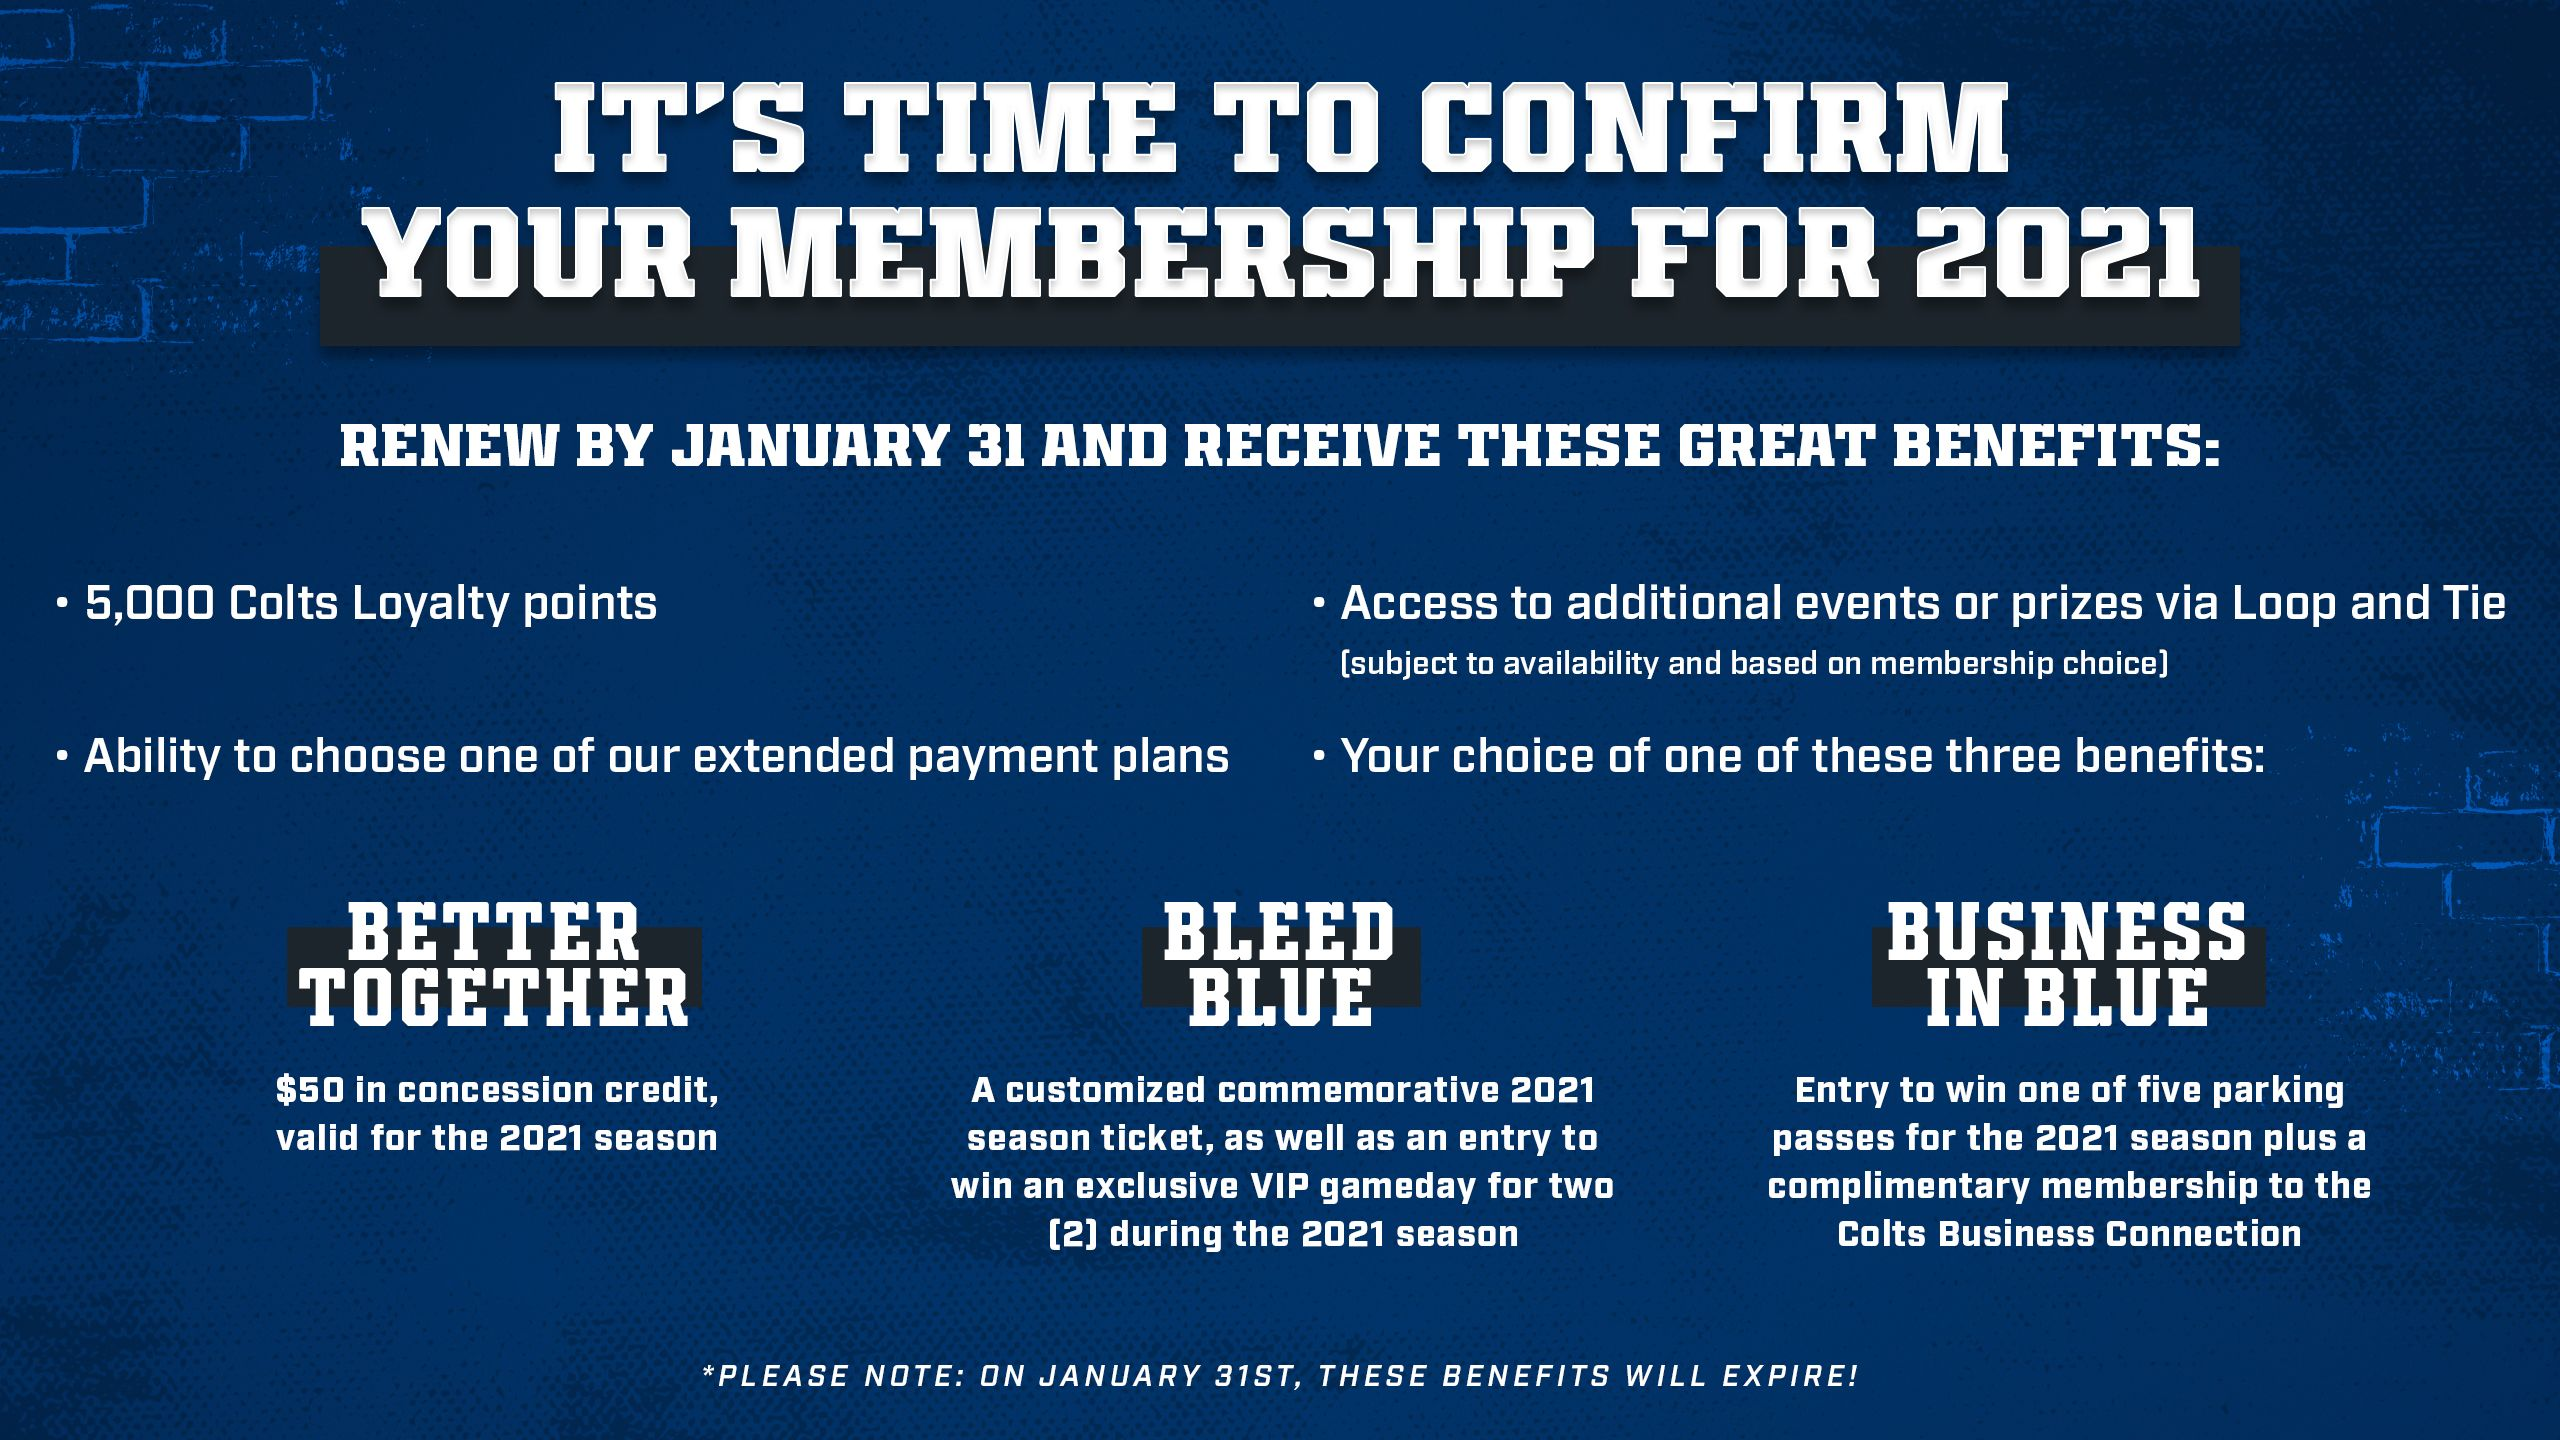 Indianapolis Colts Season Ticket Benefits: January  It's time to confirm your membership for 2021  Renew by January 31 and receive these great benefits:  *   5,000 Colts Loyalty Points *   Ability to choose one of our extended Payment planys *   Access to additional events or prizes via Loop and Tie (subject to availability and based on membership choice) *   Your choice in one of these three benefits:  Better Together: $50 in concession credit, valid for the 2021 season  Bleed Blue: A customized commemorative 2021 season ticket, as well as an entry to win an exclusive VIP gameday for two (2) during the 2021 season  Business In Blue: Entry to win one of five parking passes for the 2021 season plus a complimentary membership to the Colts Business Connection  *Please note: On January 31st, these benefits will expire!